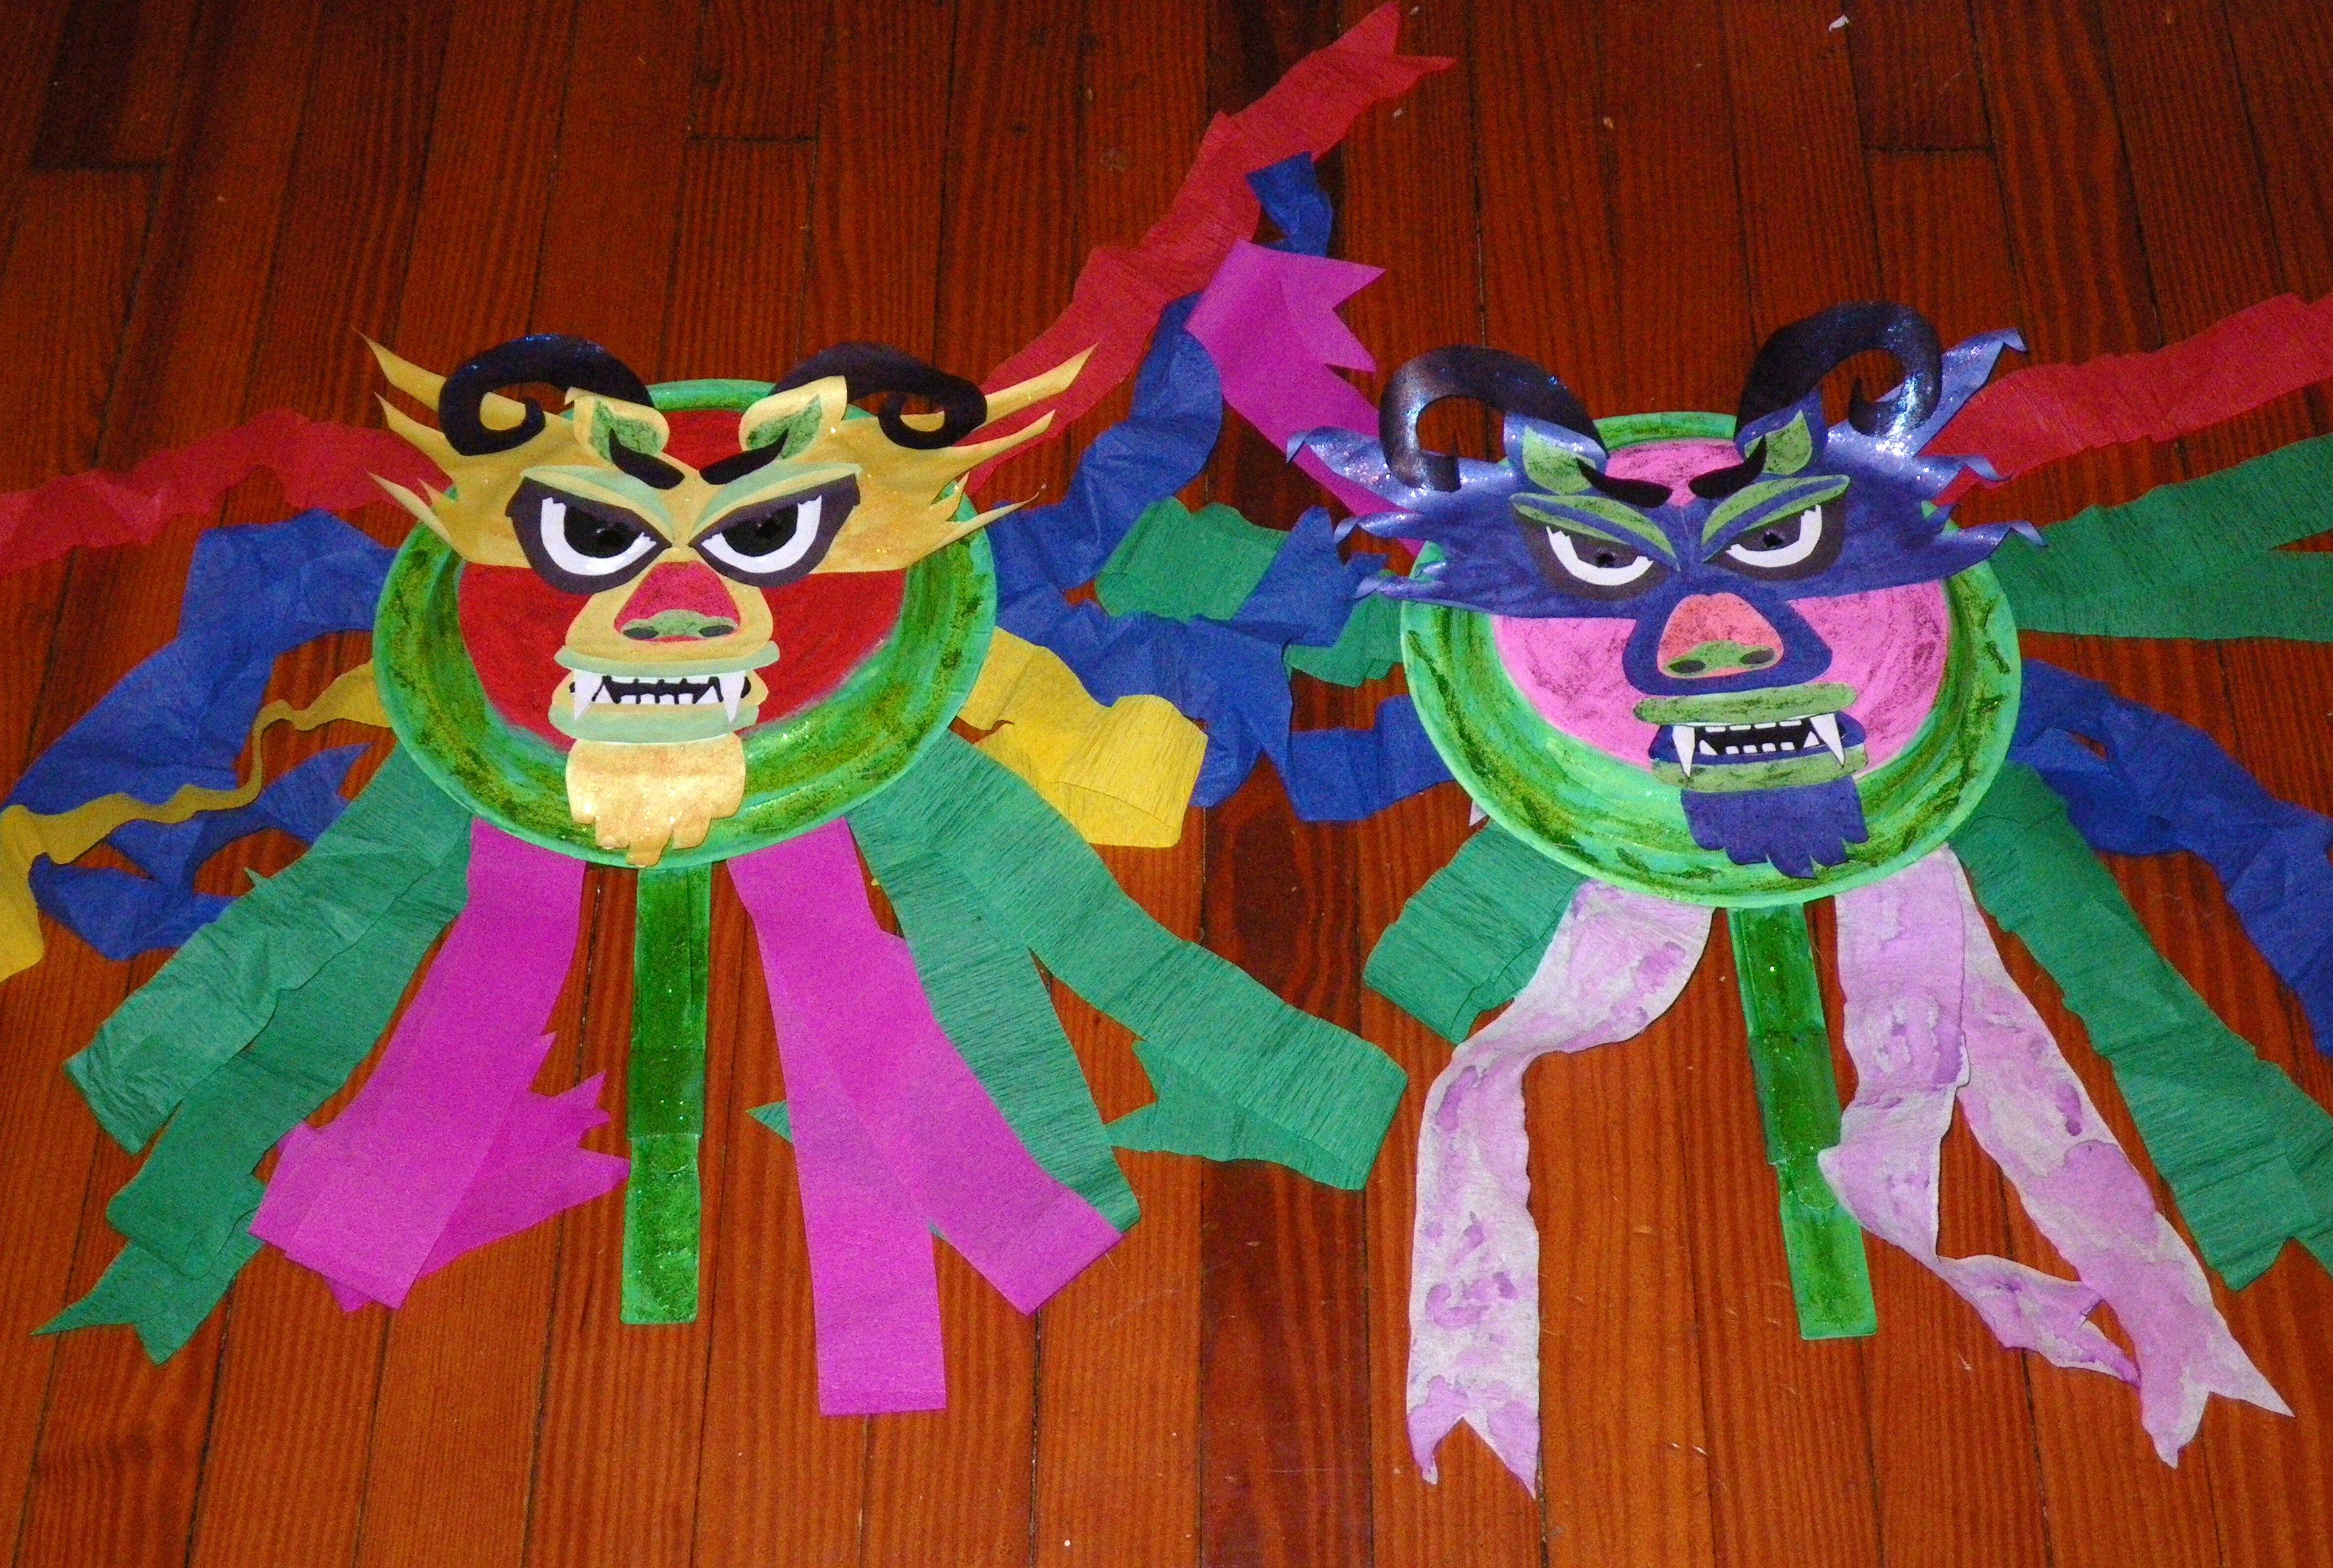 Chinese New Year Dragon Masks I Got The Pattern For These